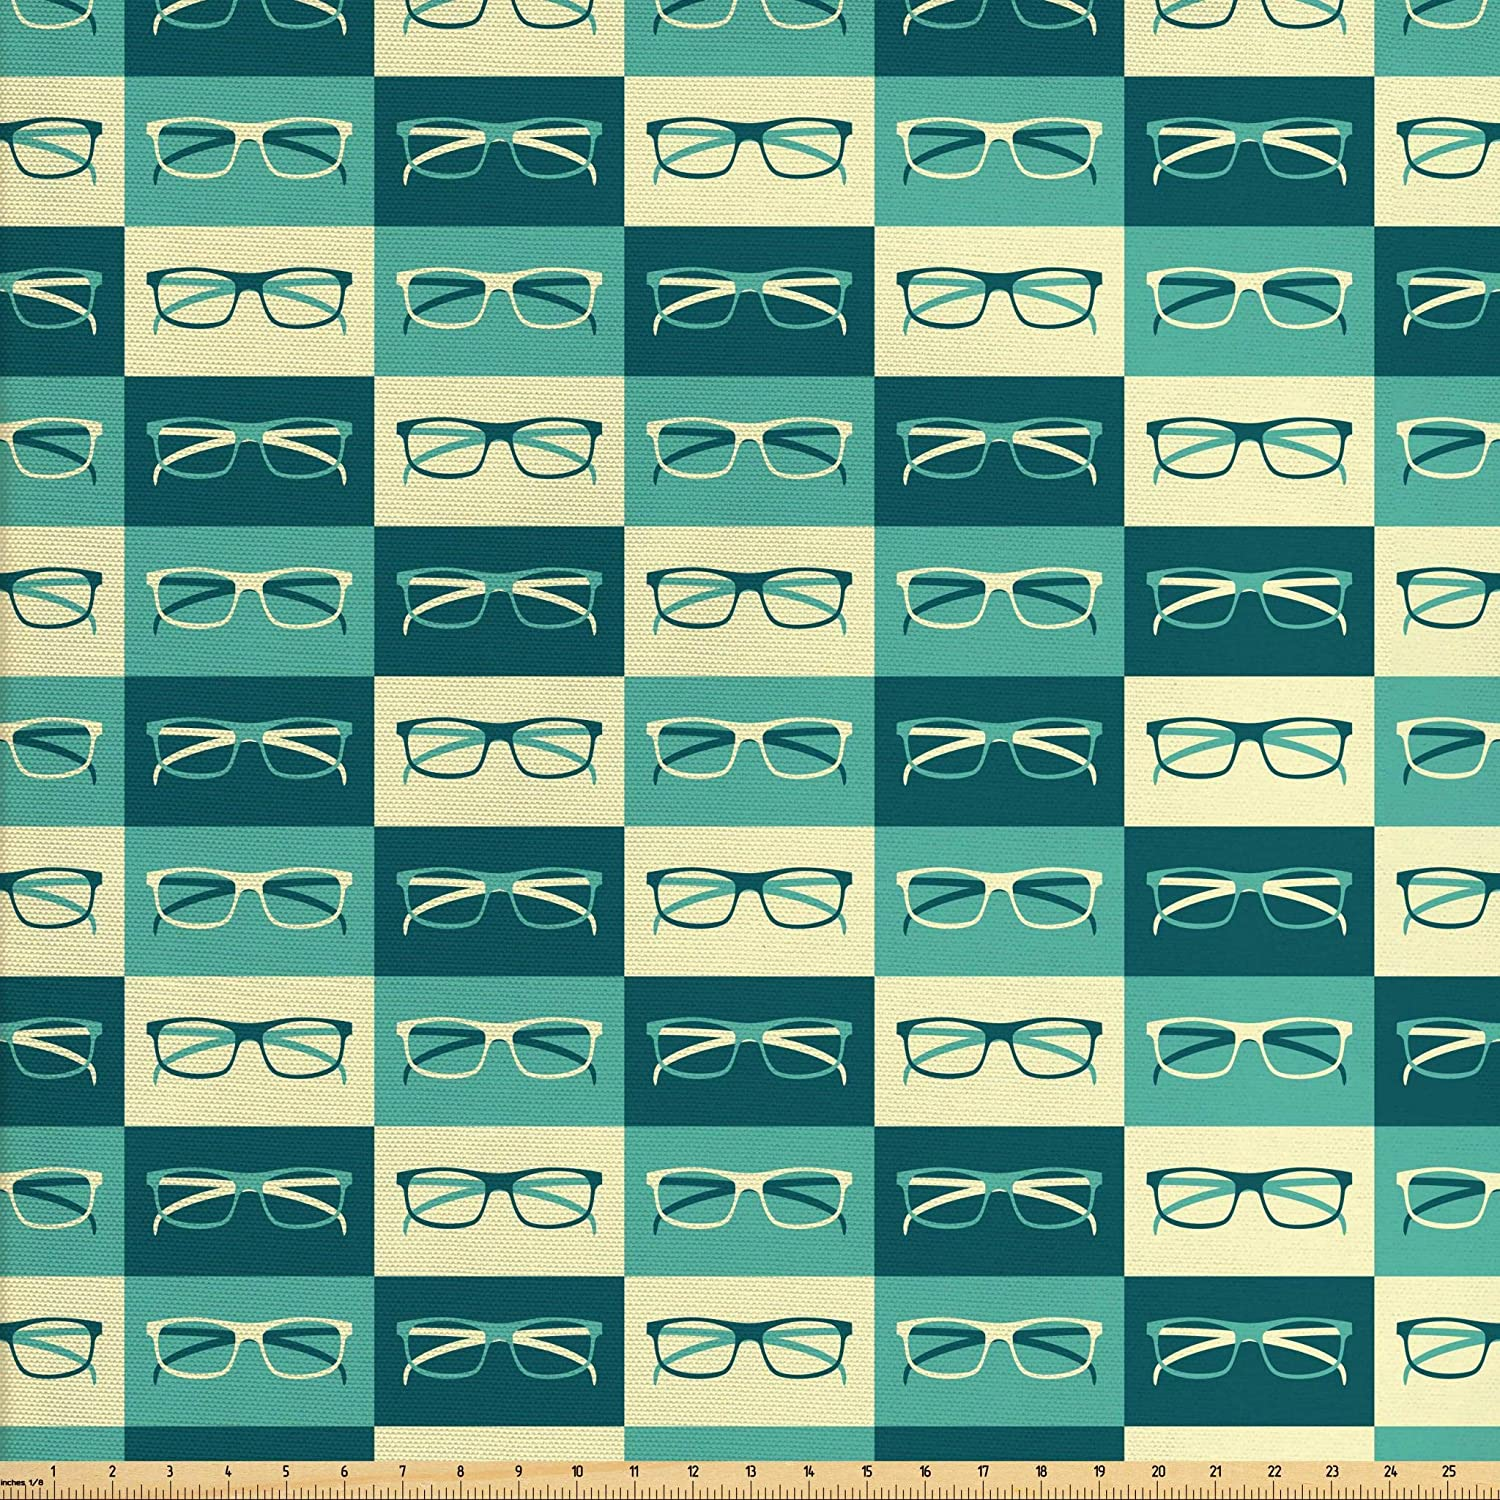 Ambesonne Indie Fabric by The Yard, Pattern with Eyeglasses in Vintage Style Hipster Cool Design Modern, Decorative Fabric for Upholstery and Home Accents, 2 Yards, Petrol Blue